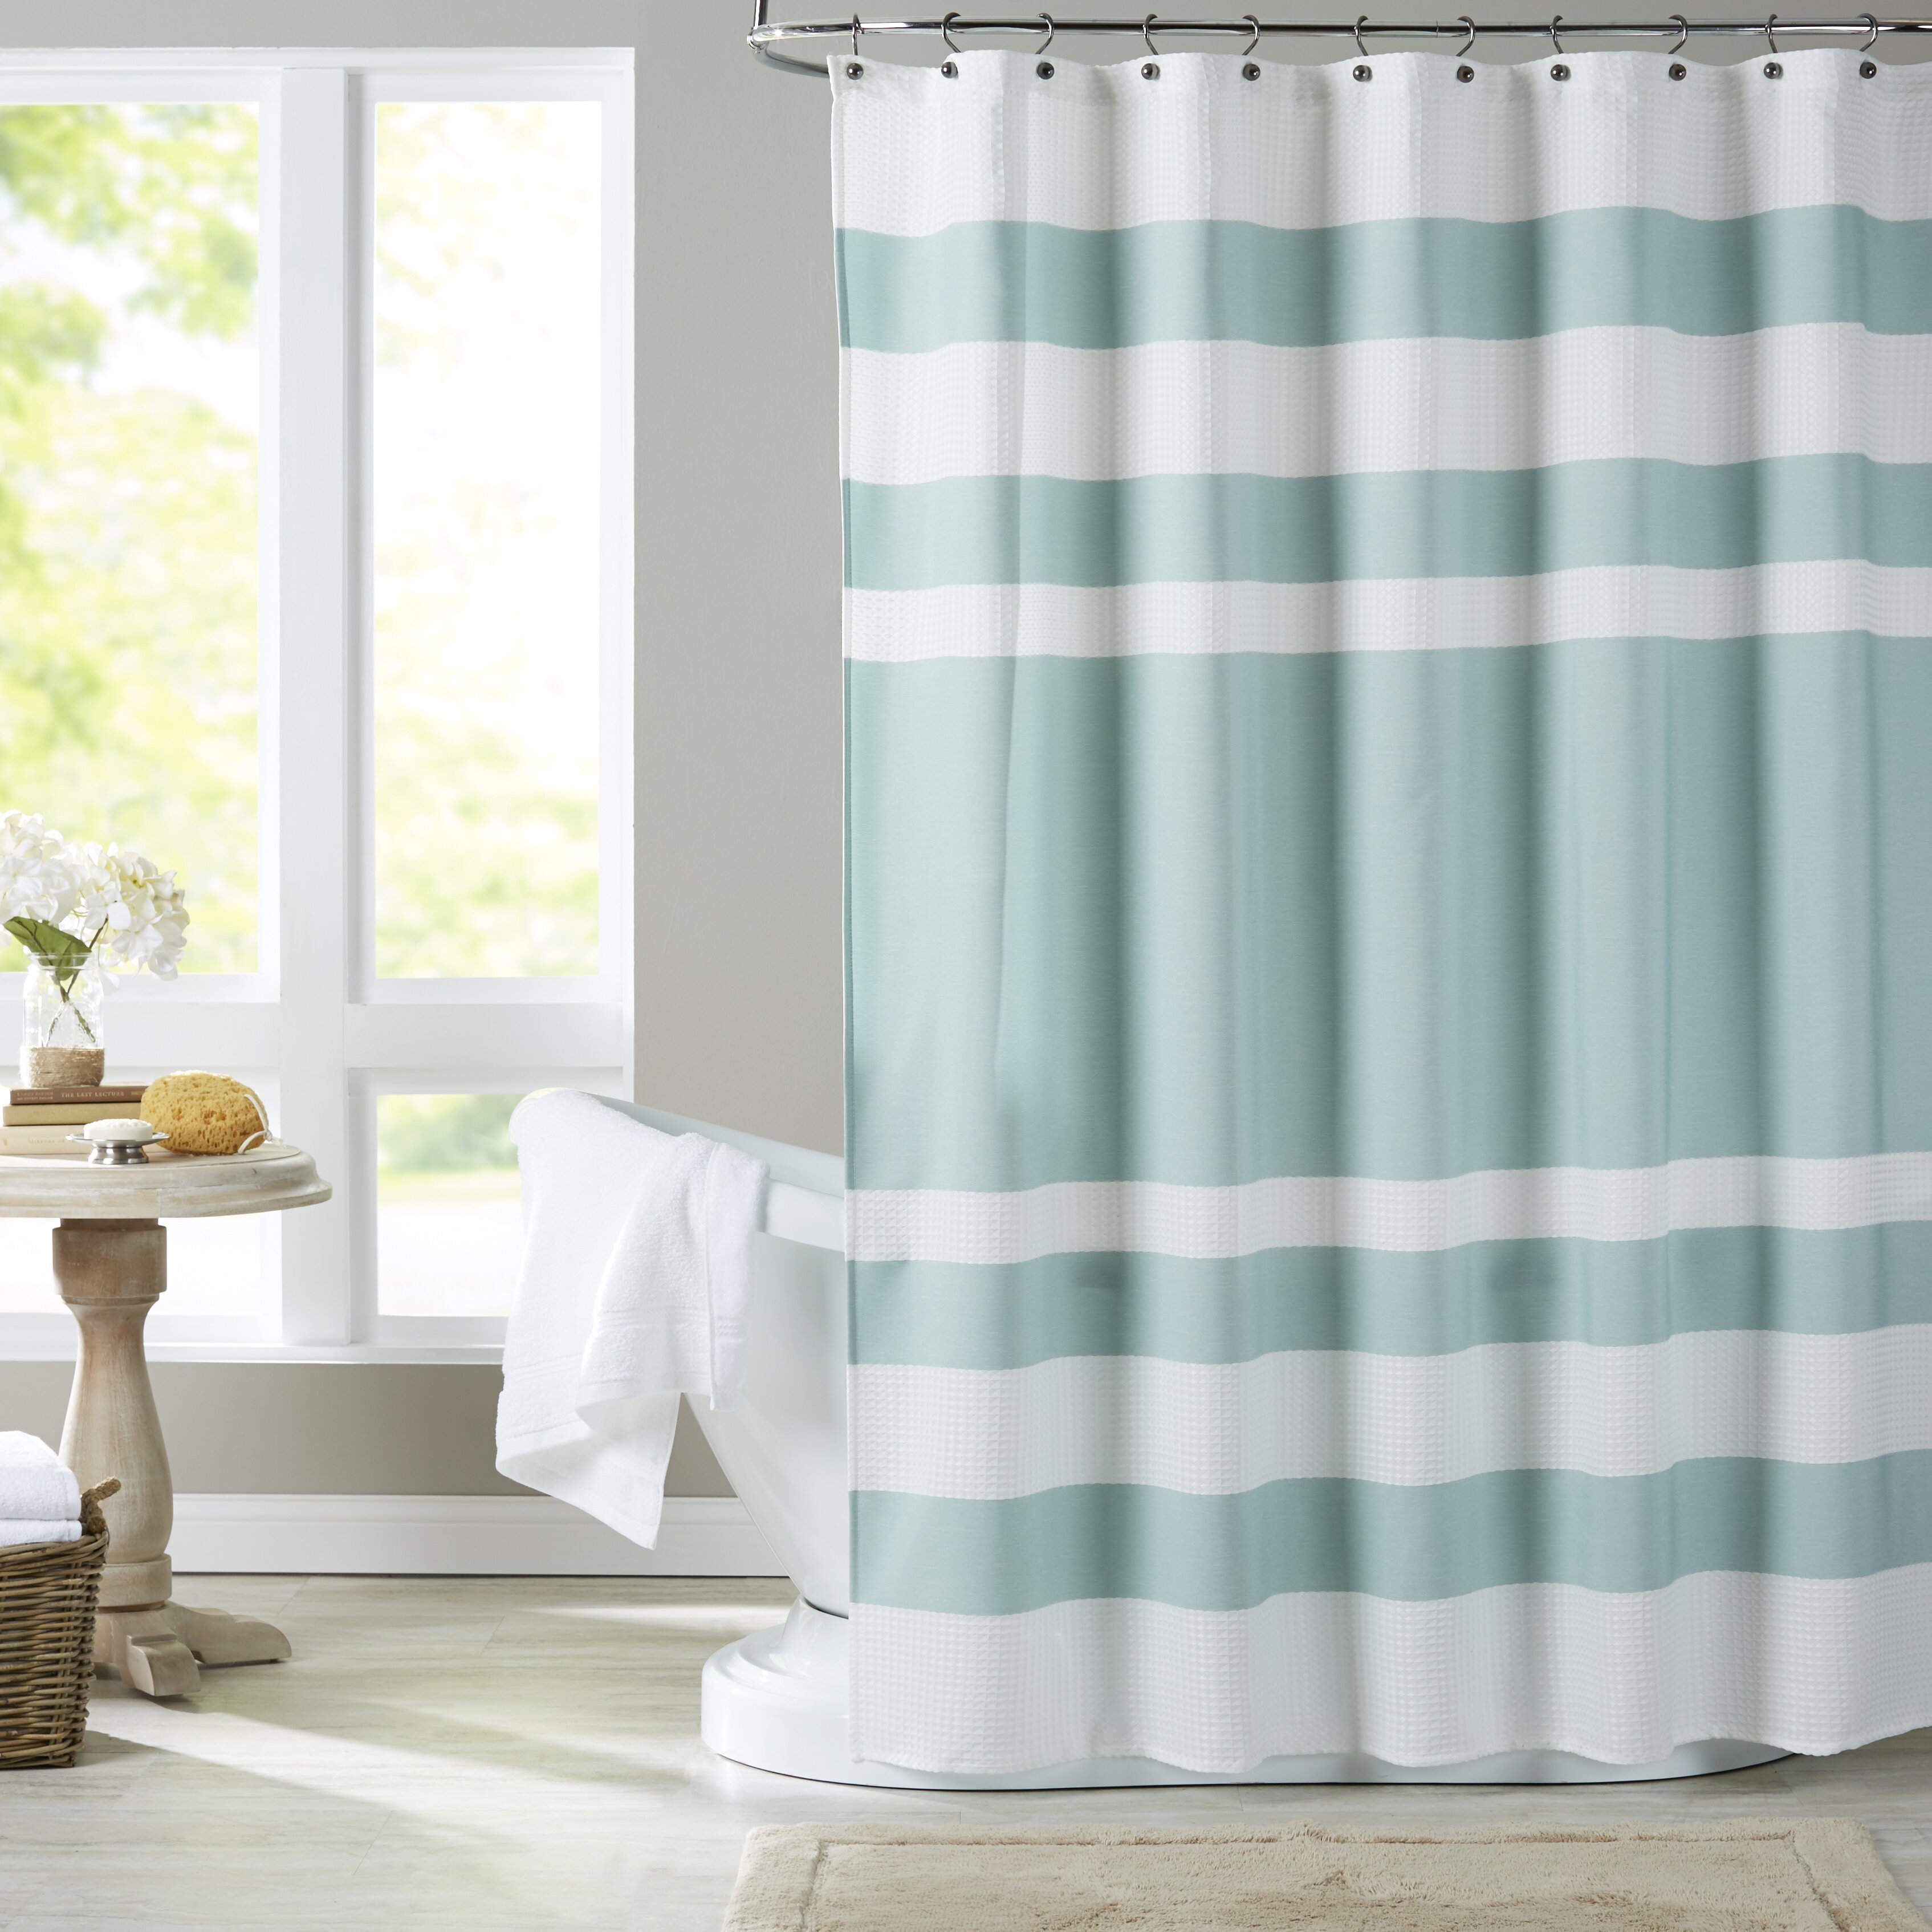 curtain duck laura photo full window concepttain ready of striped ashley size chambray stripedtains land curtains awning grey stripe white made curtainsblue concept nod blue kids egg the navy and stirring